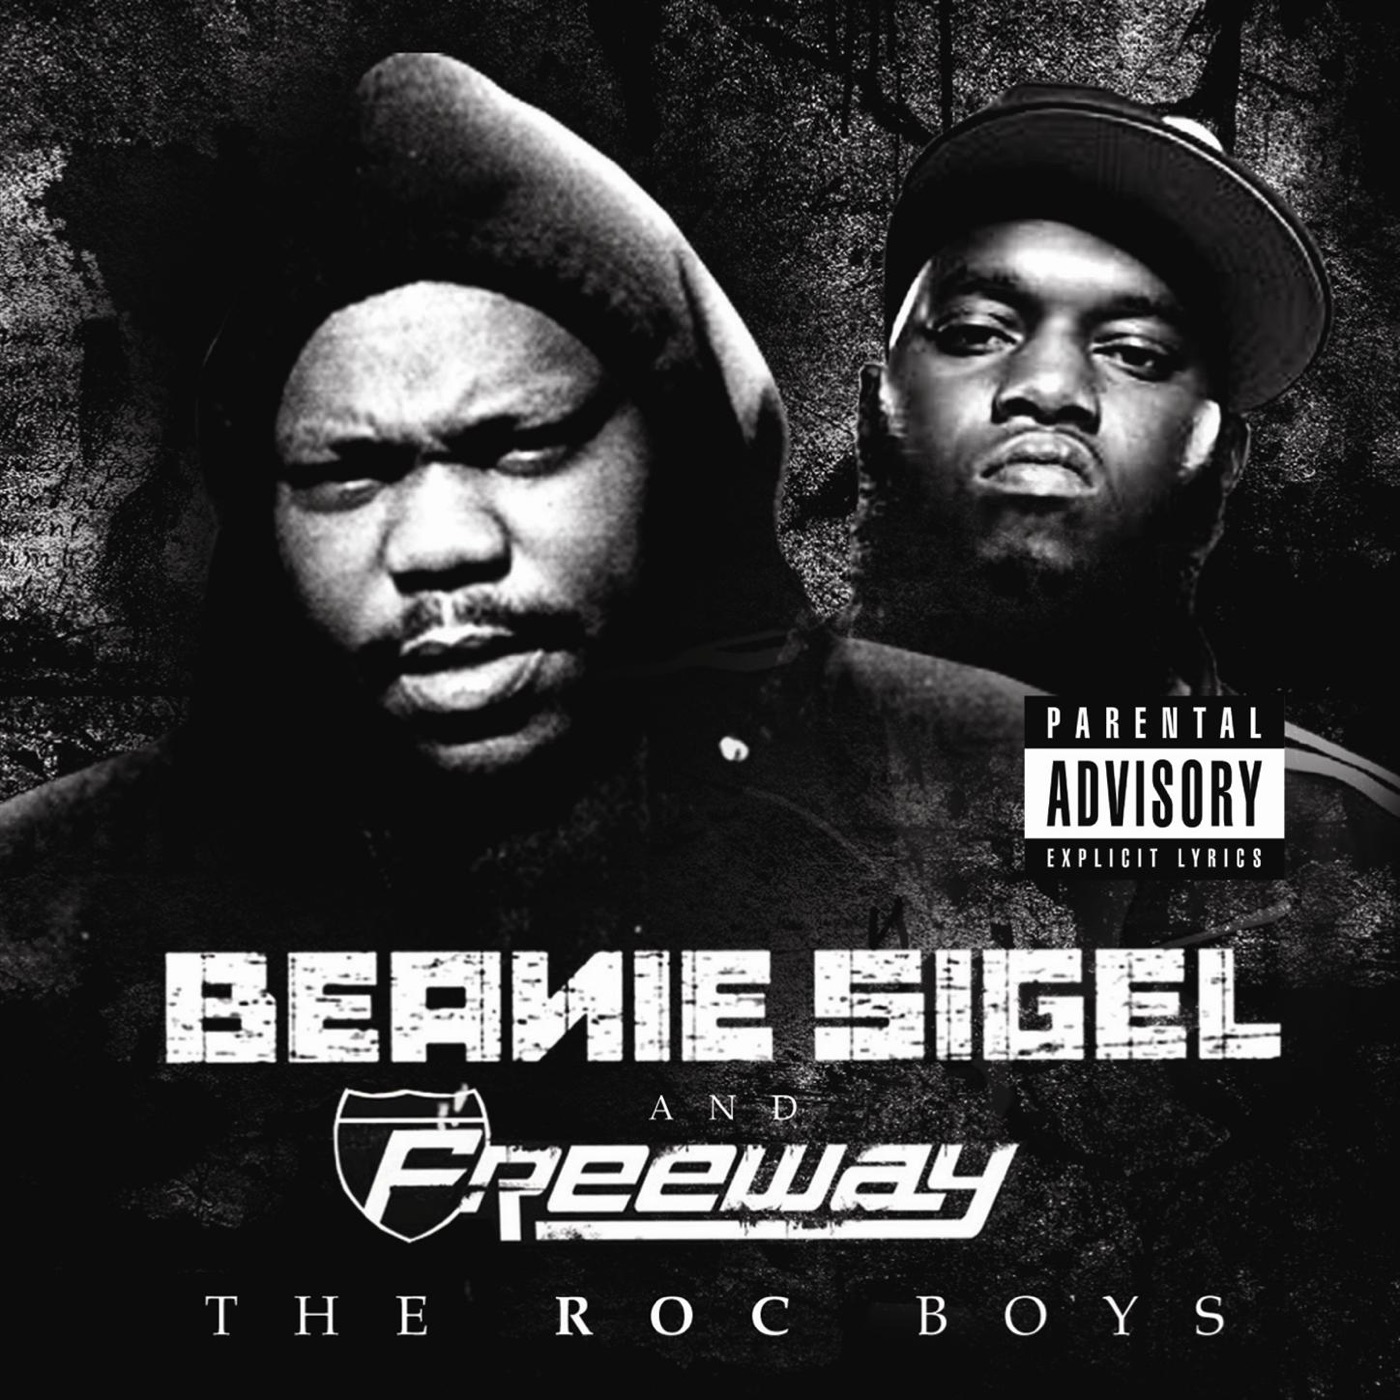 Photo Of Beanie Sigel Knocked Out By Meek Mill's Goon